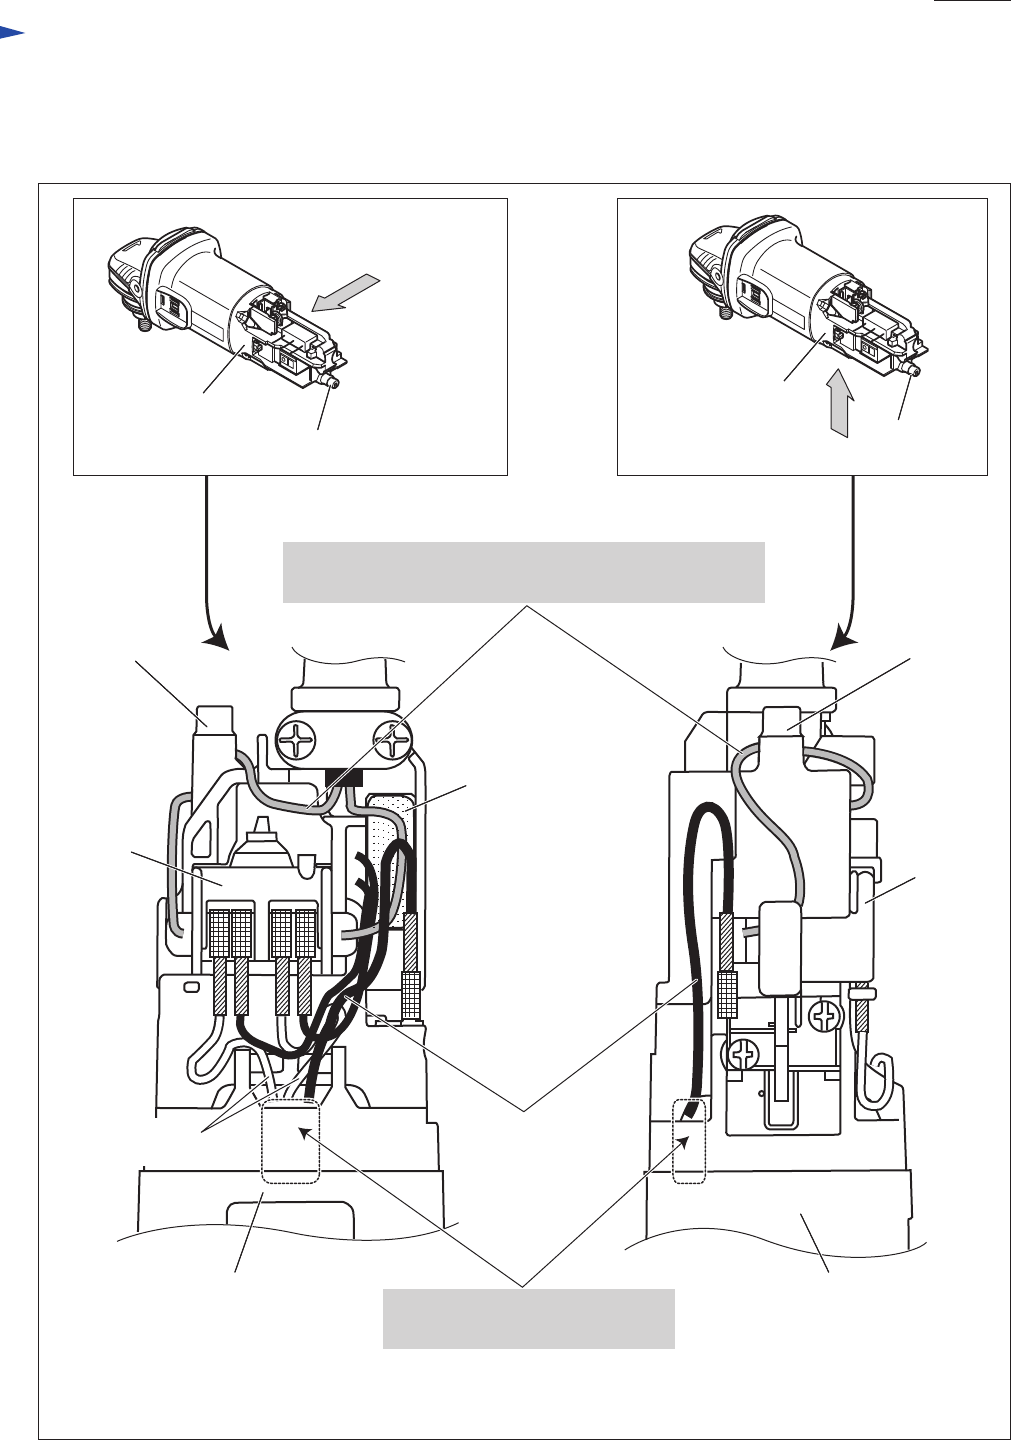 Makita Grinder 9556HN manual (page 7 of 8)